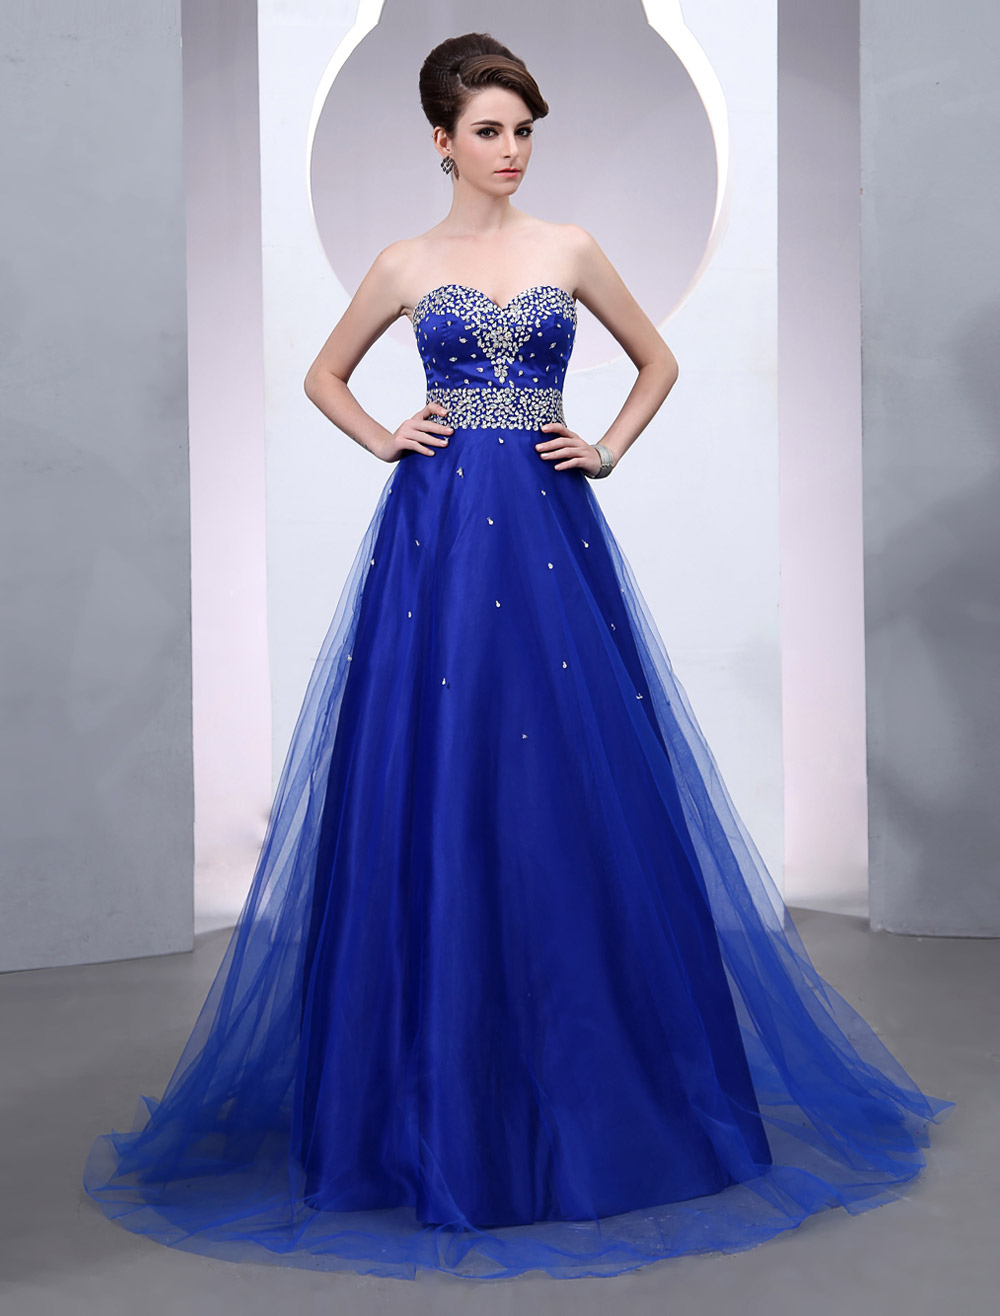 Buy Blue Prom Dress 2018 Long Tulle Wedding Dress Royal Blue Backless Strapless Sweetheart Court Train Bridal Gown for $172.79 in Milanoo store